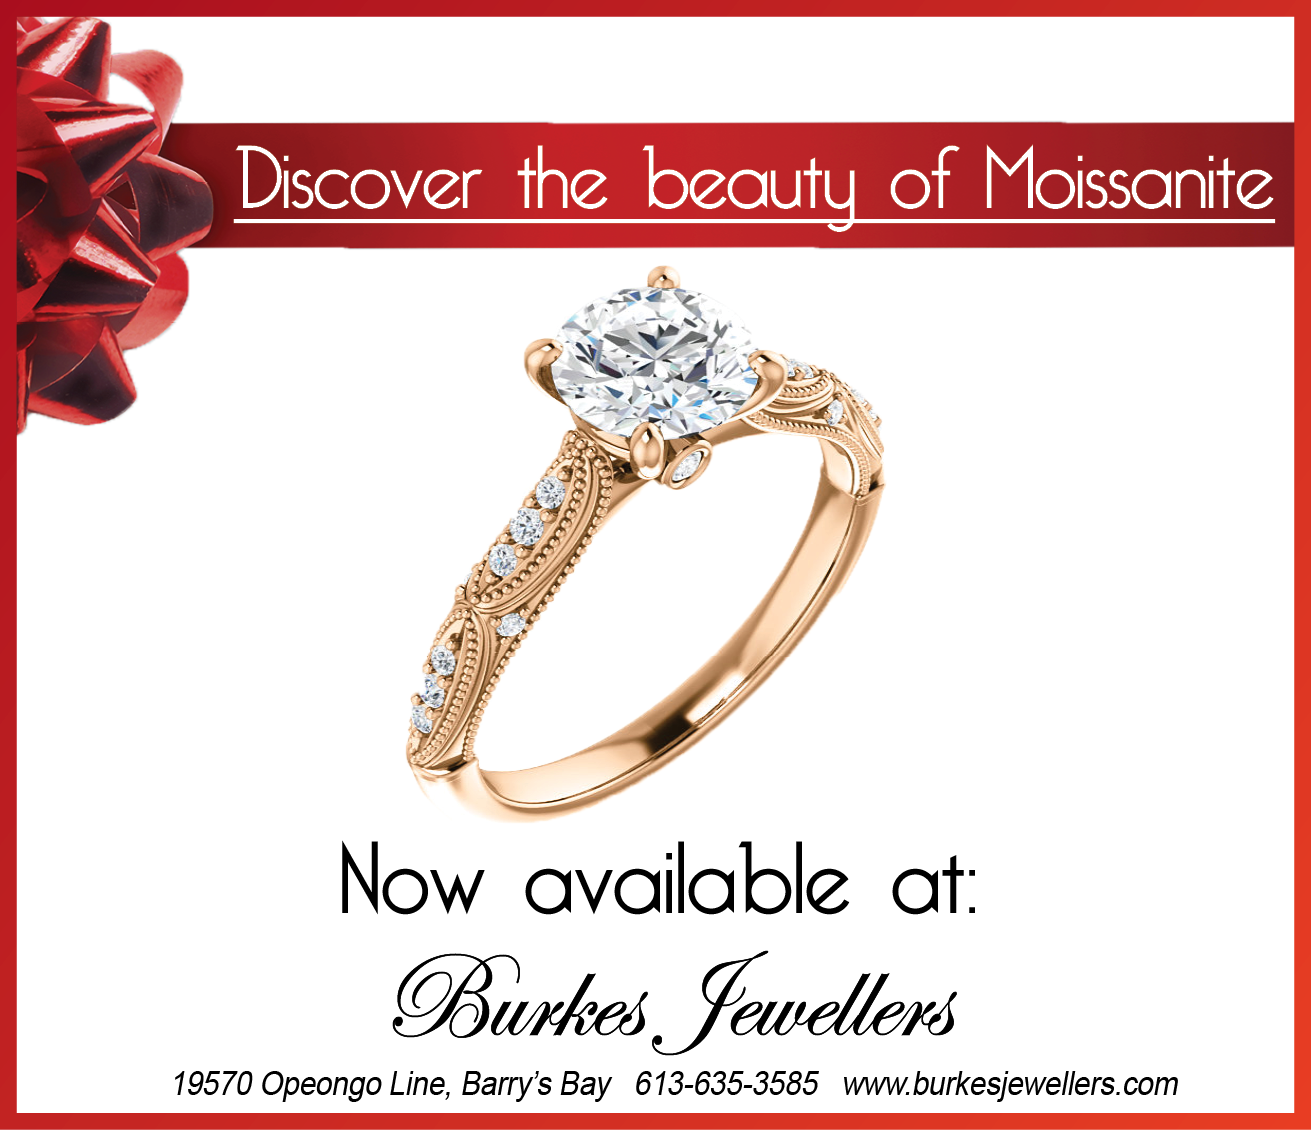 12-12-Burkes-Jewellers-SHOP-3x4.png